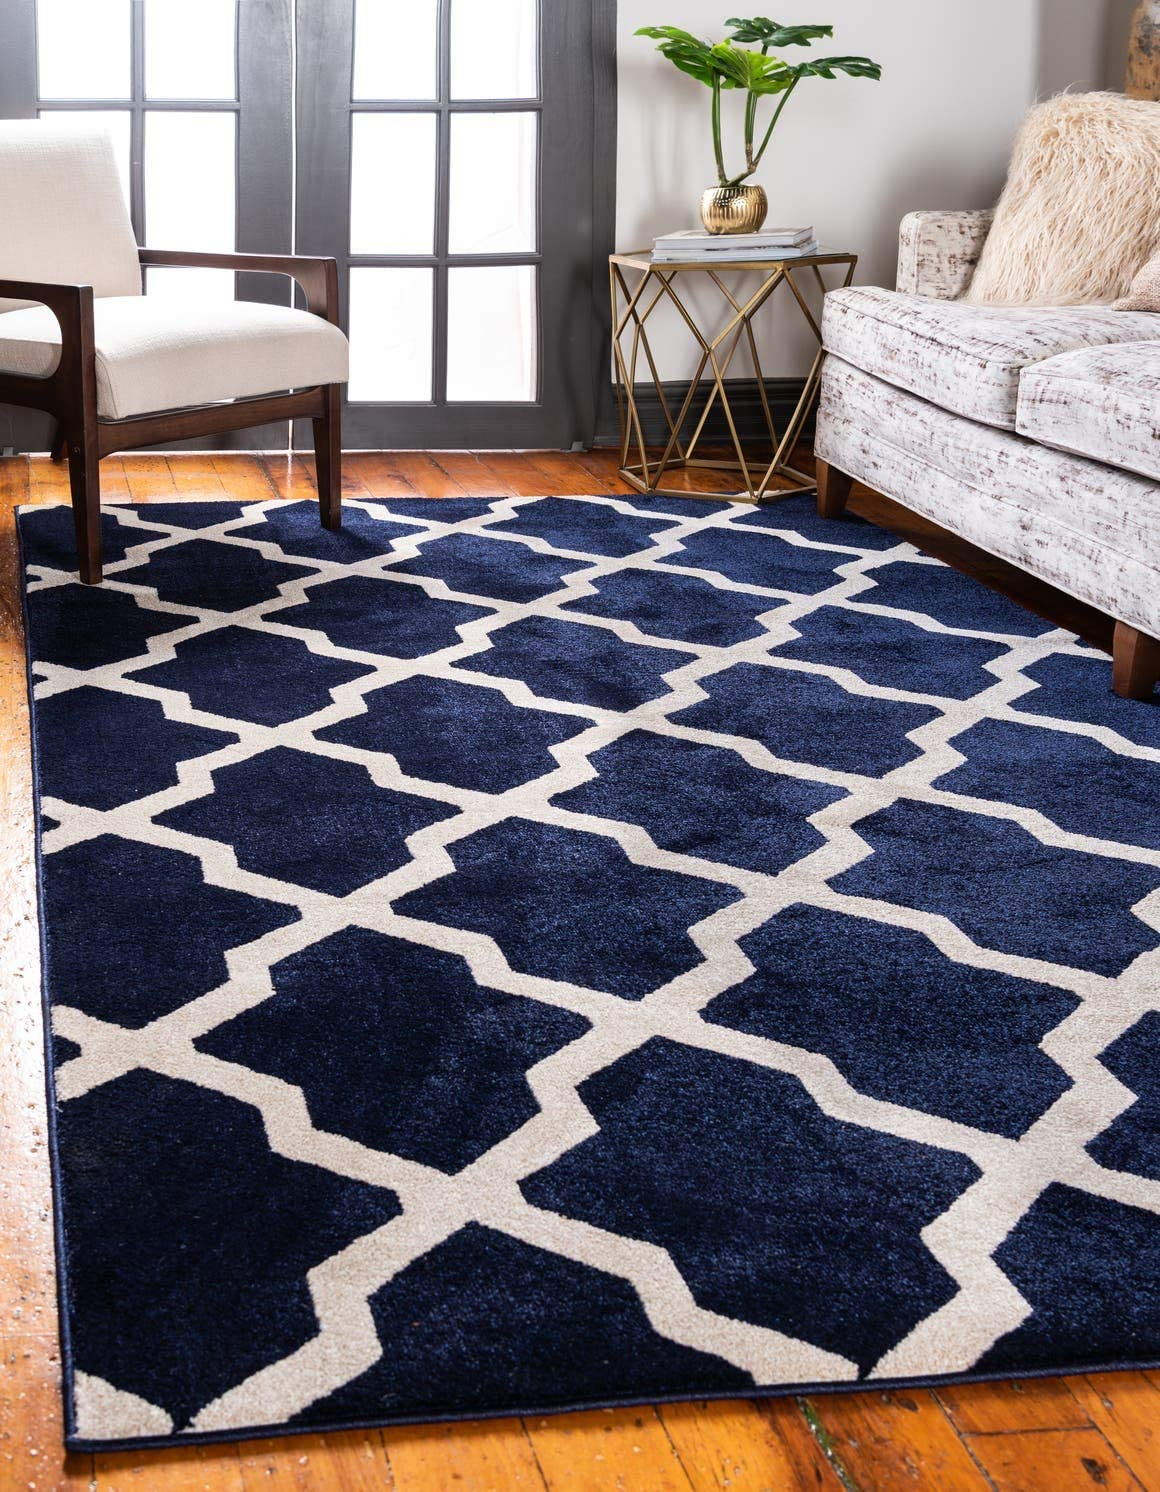 Unique Loom Trellis Collection Geometric Modern Navy Blue Area Rug 9 0 x 12 0